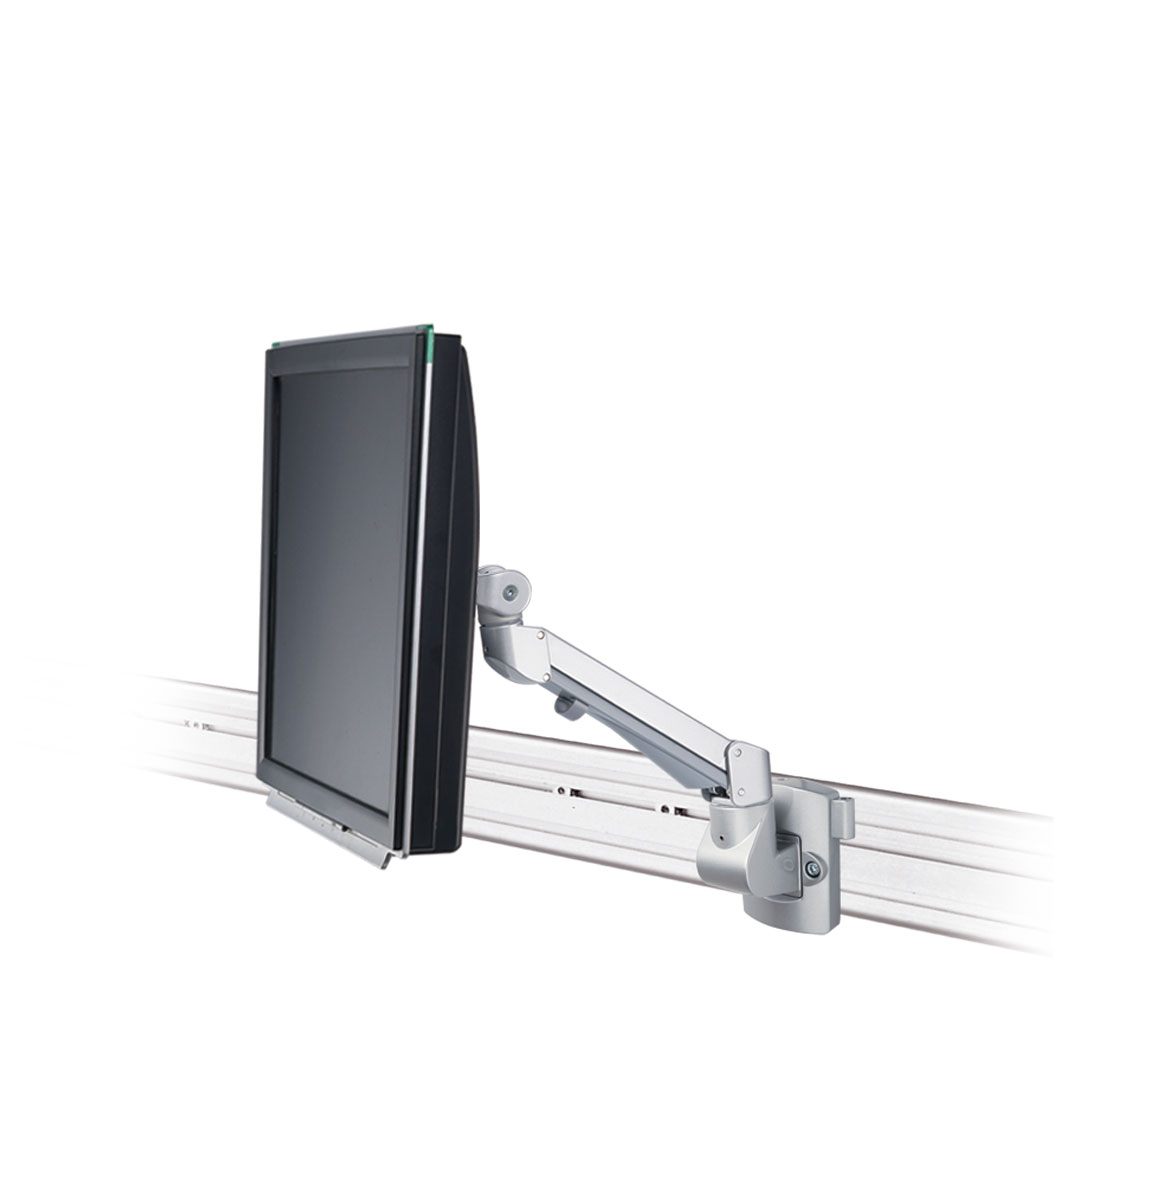 Monitor Arm Ea 119 For Toolbar System Complement